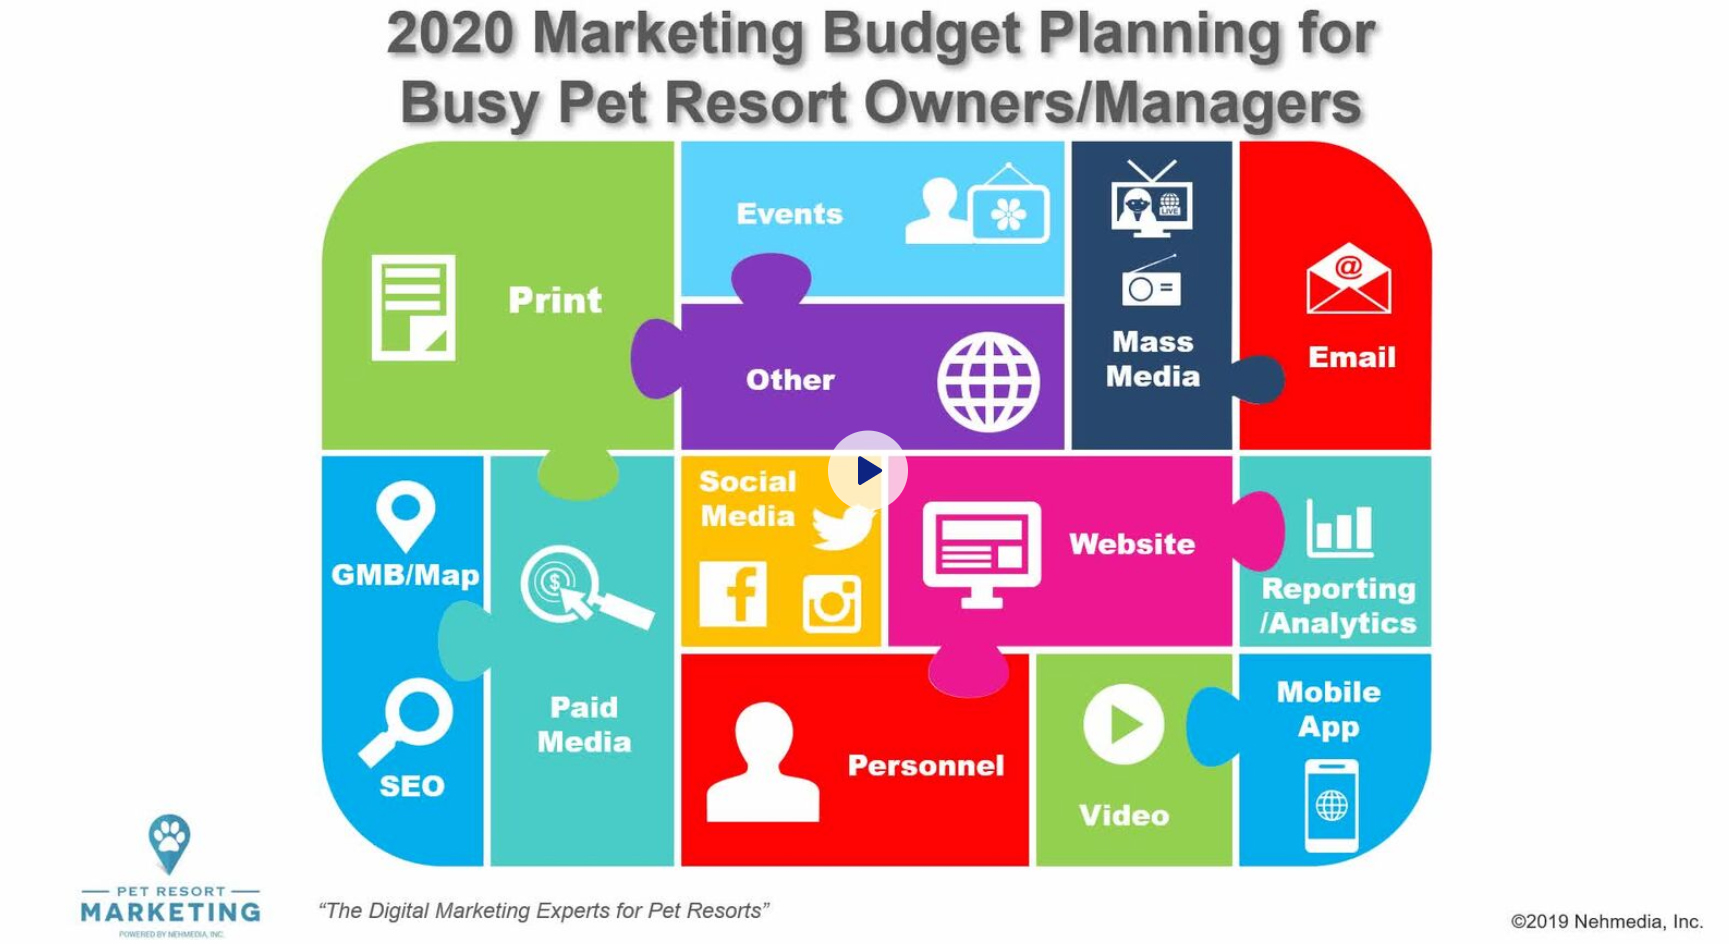 2020 Marketing Budget Planning for Busy Pet Resort Owners/Managers